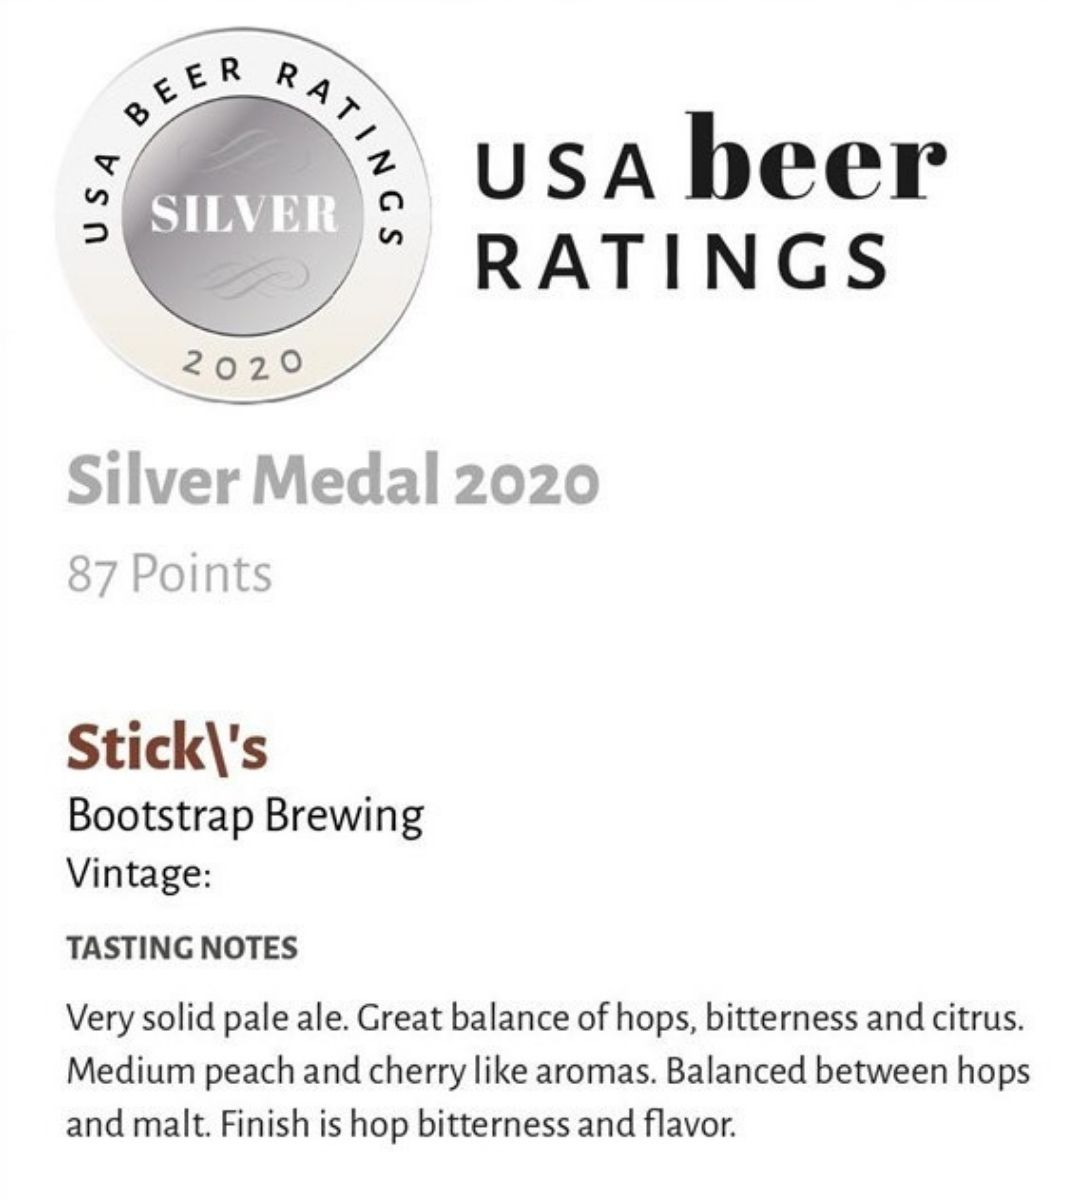 Stick's Silver Medal USA Beer Ratings